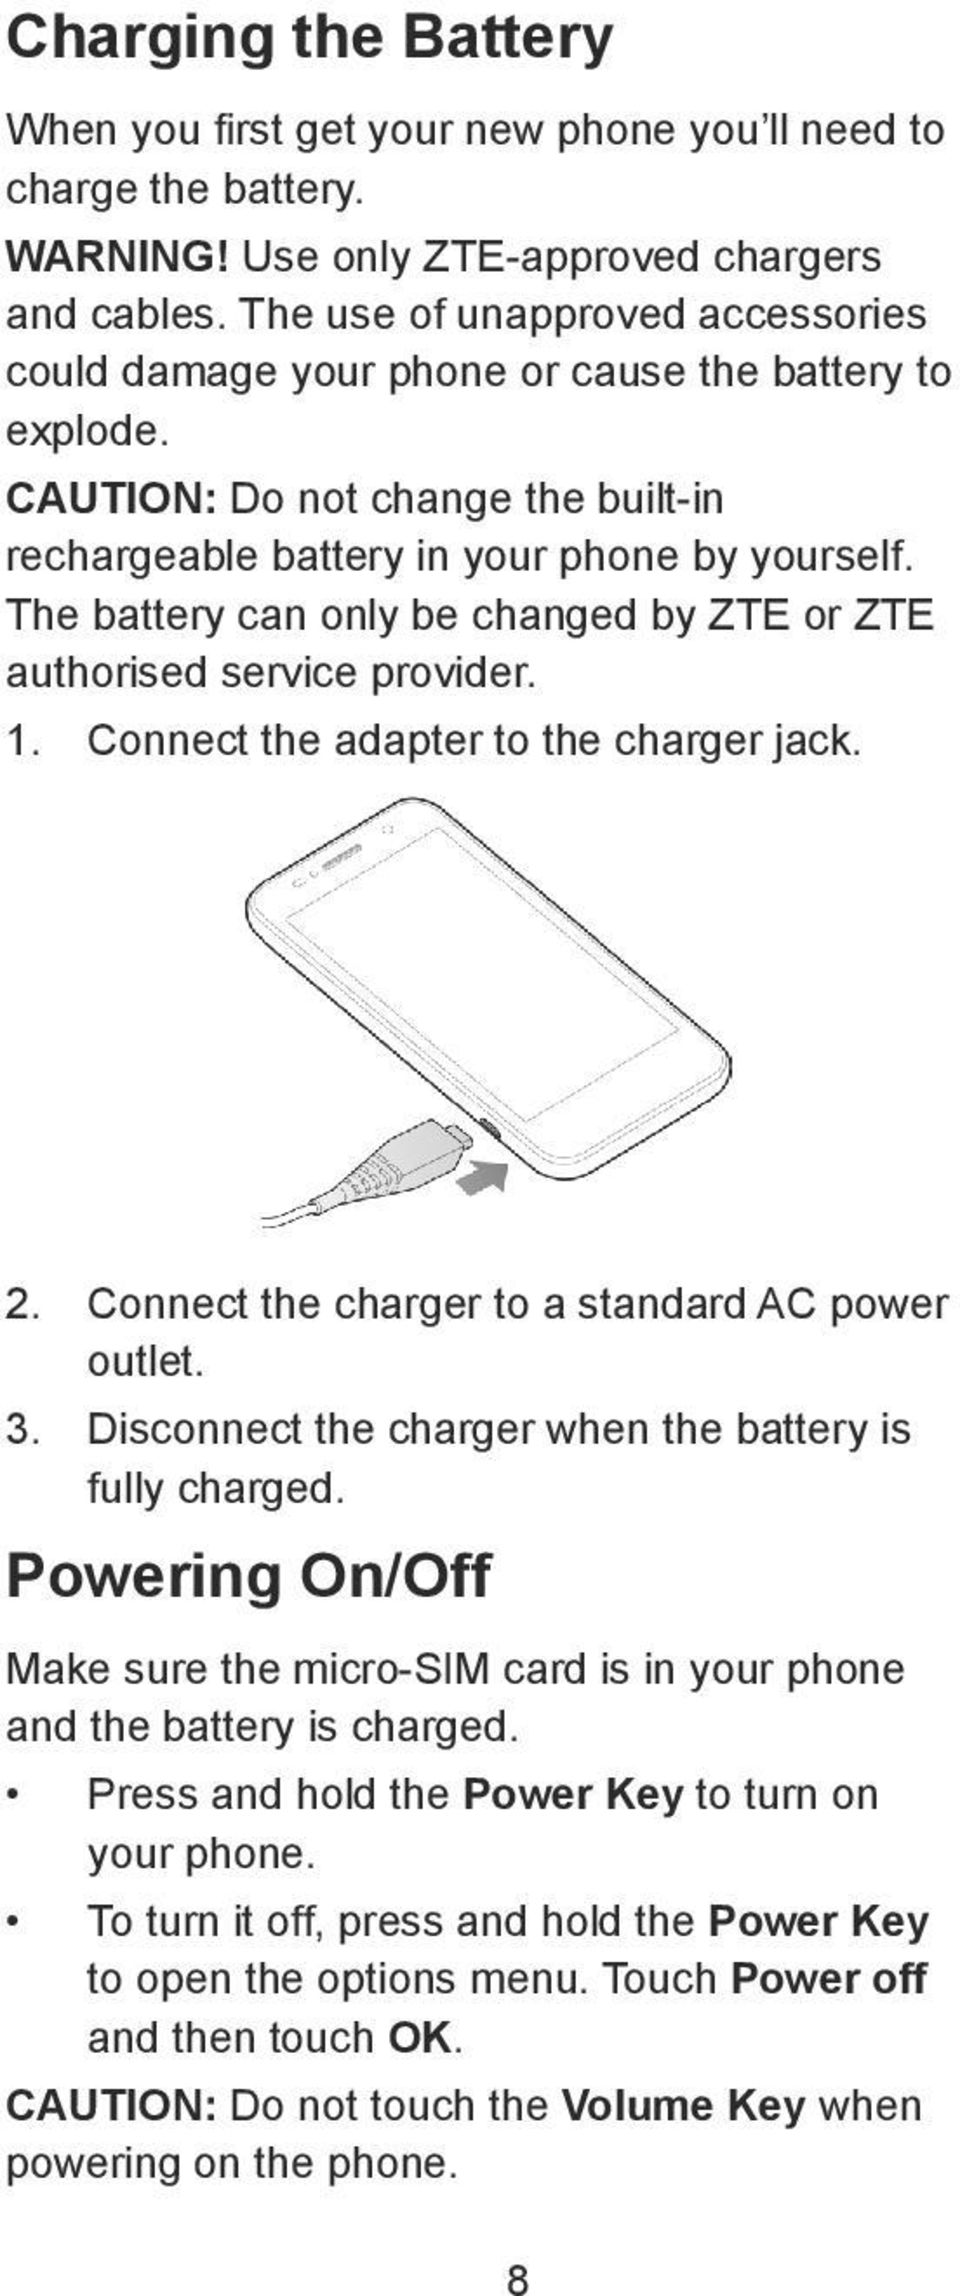 The battery can only be changed by ZTE or ZTE authorised service provider. 1. Connect the adapter to the charger jack. 2. Connect the charger to a standard AC power outlet. 3.